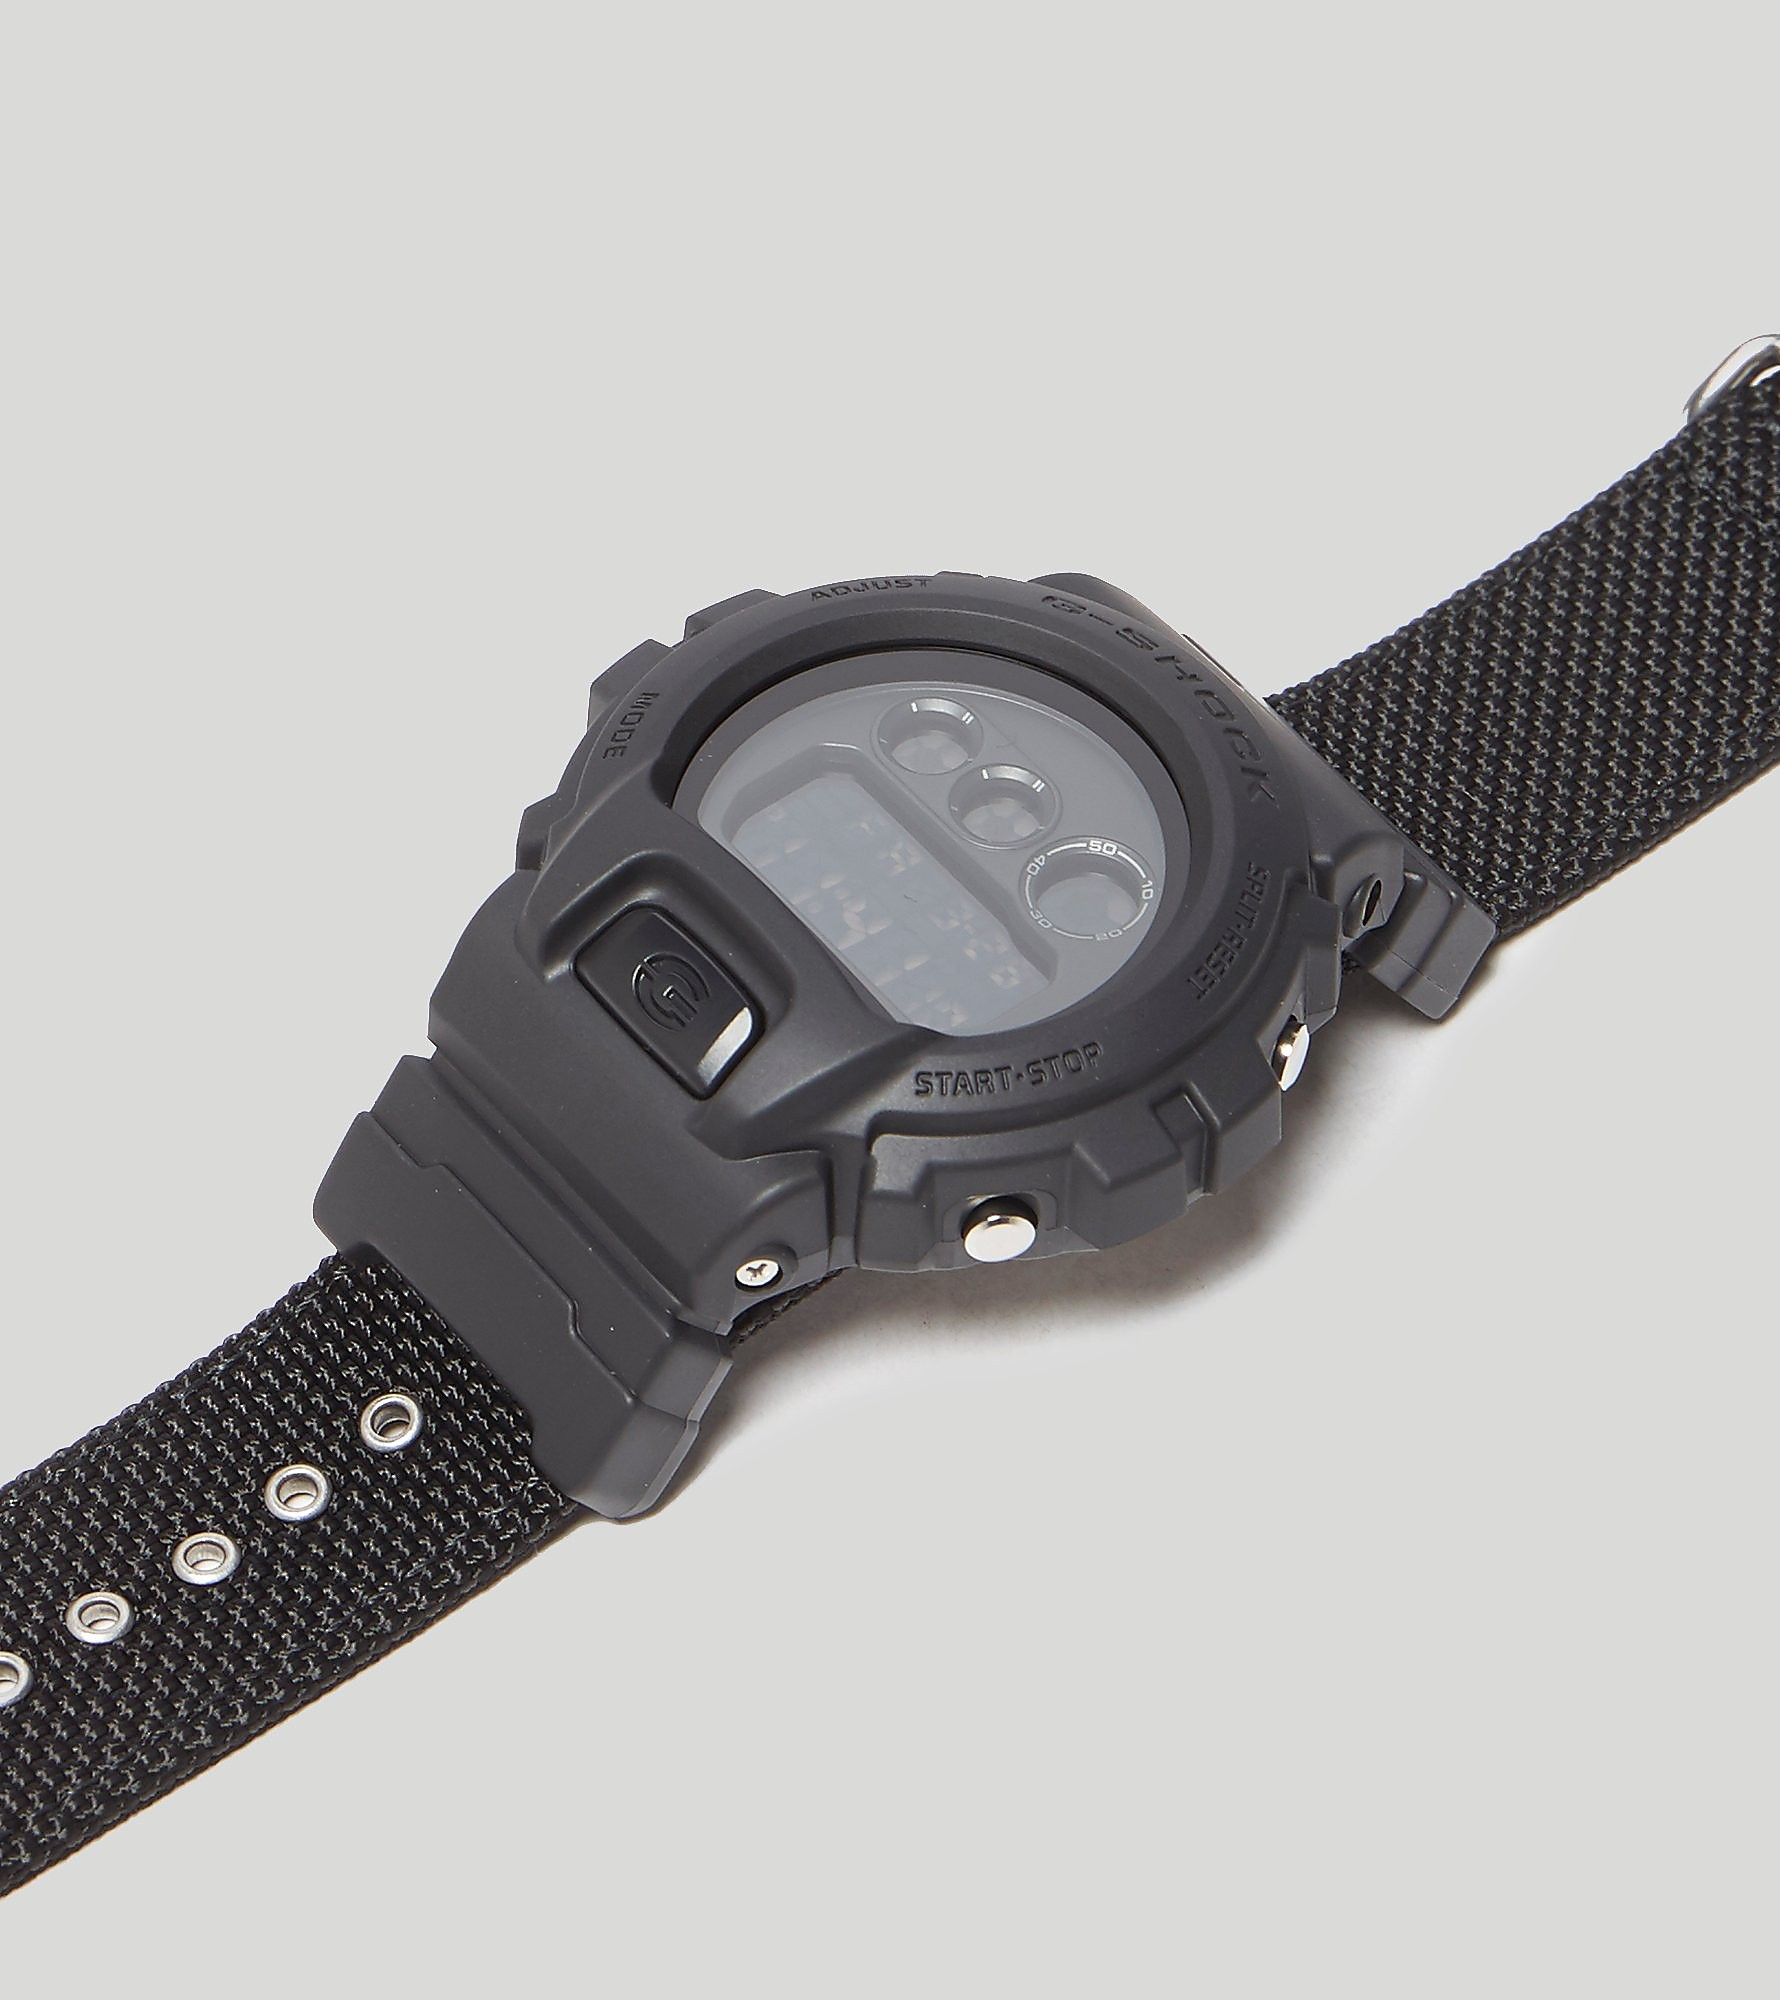 G-Shock DW-6900BBN Cordura Watch